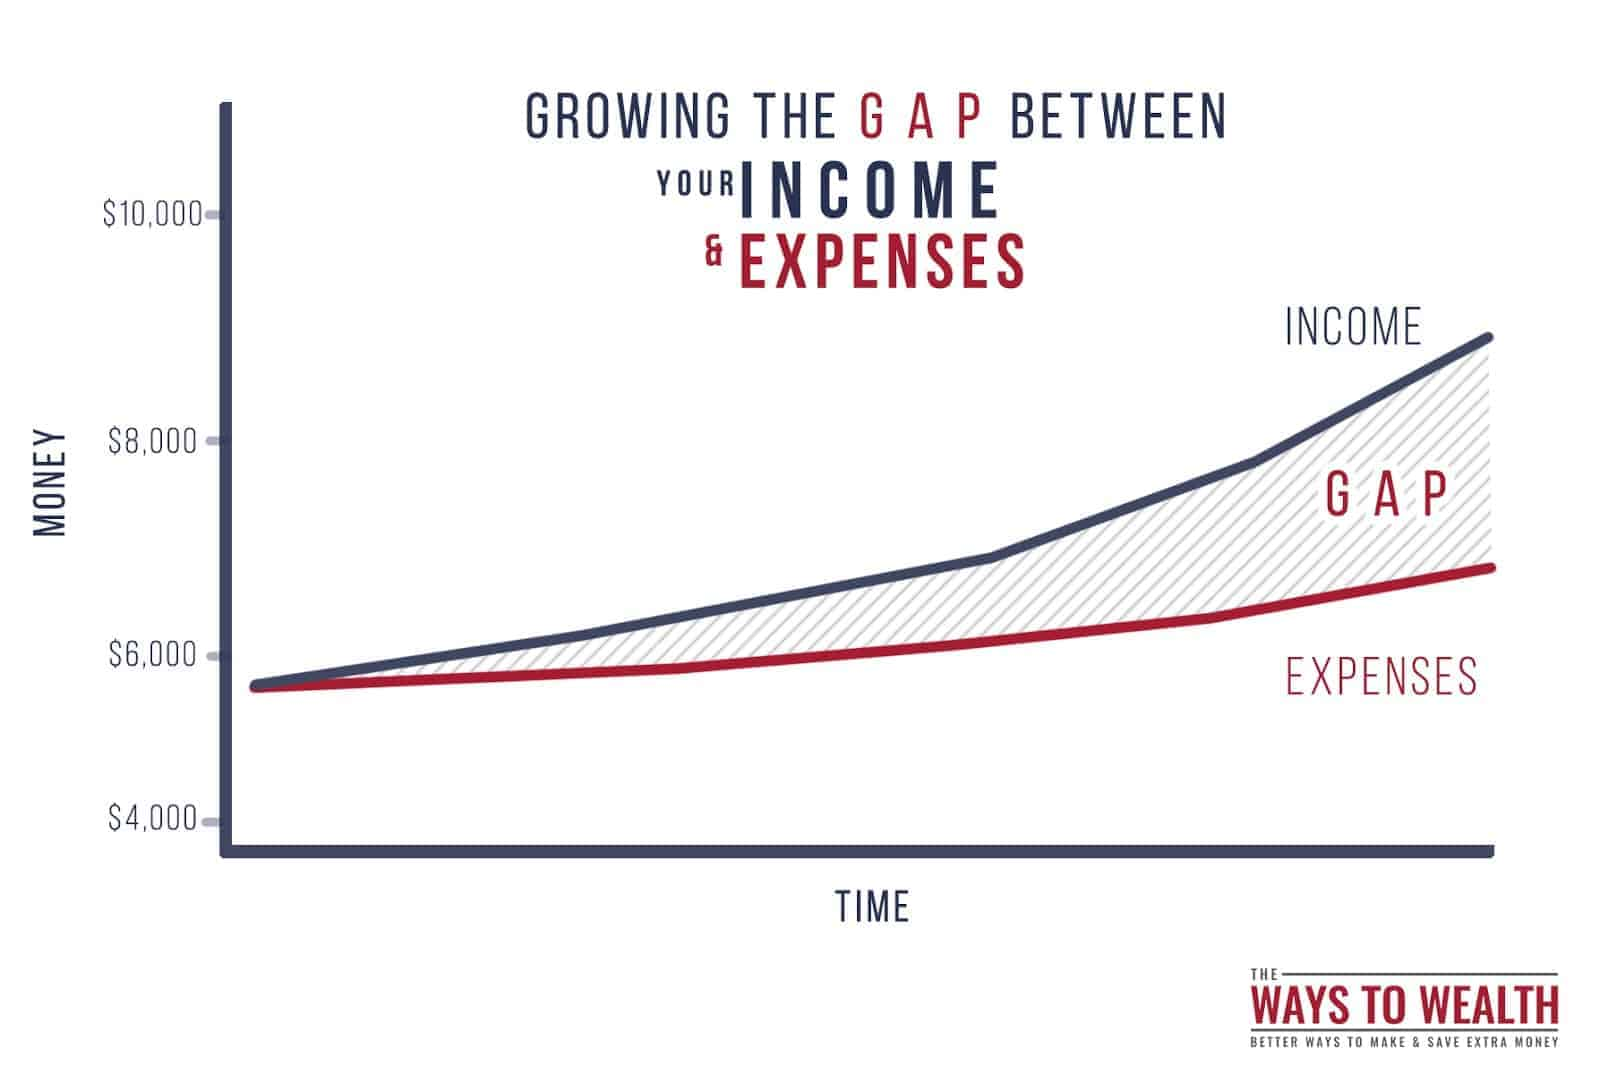 Grow the gap between your income and expenses